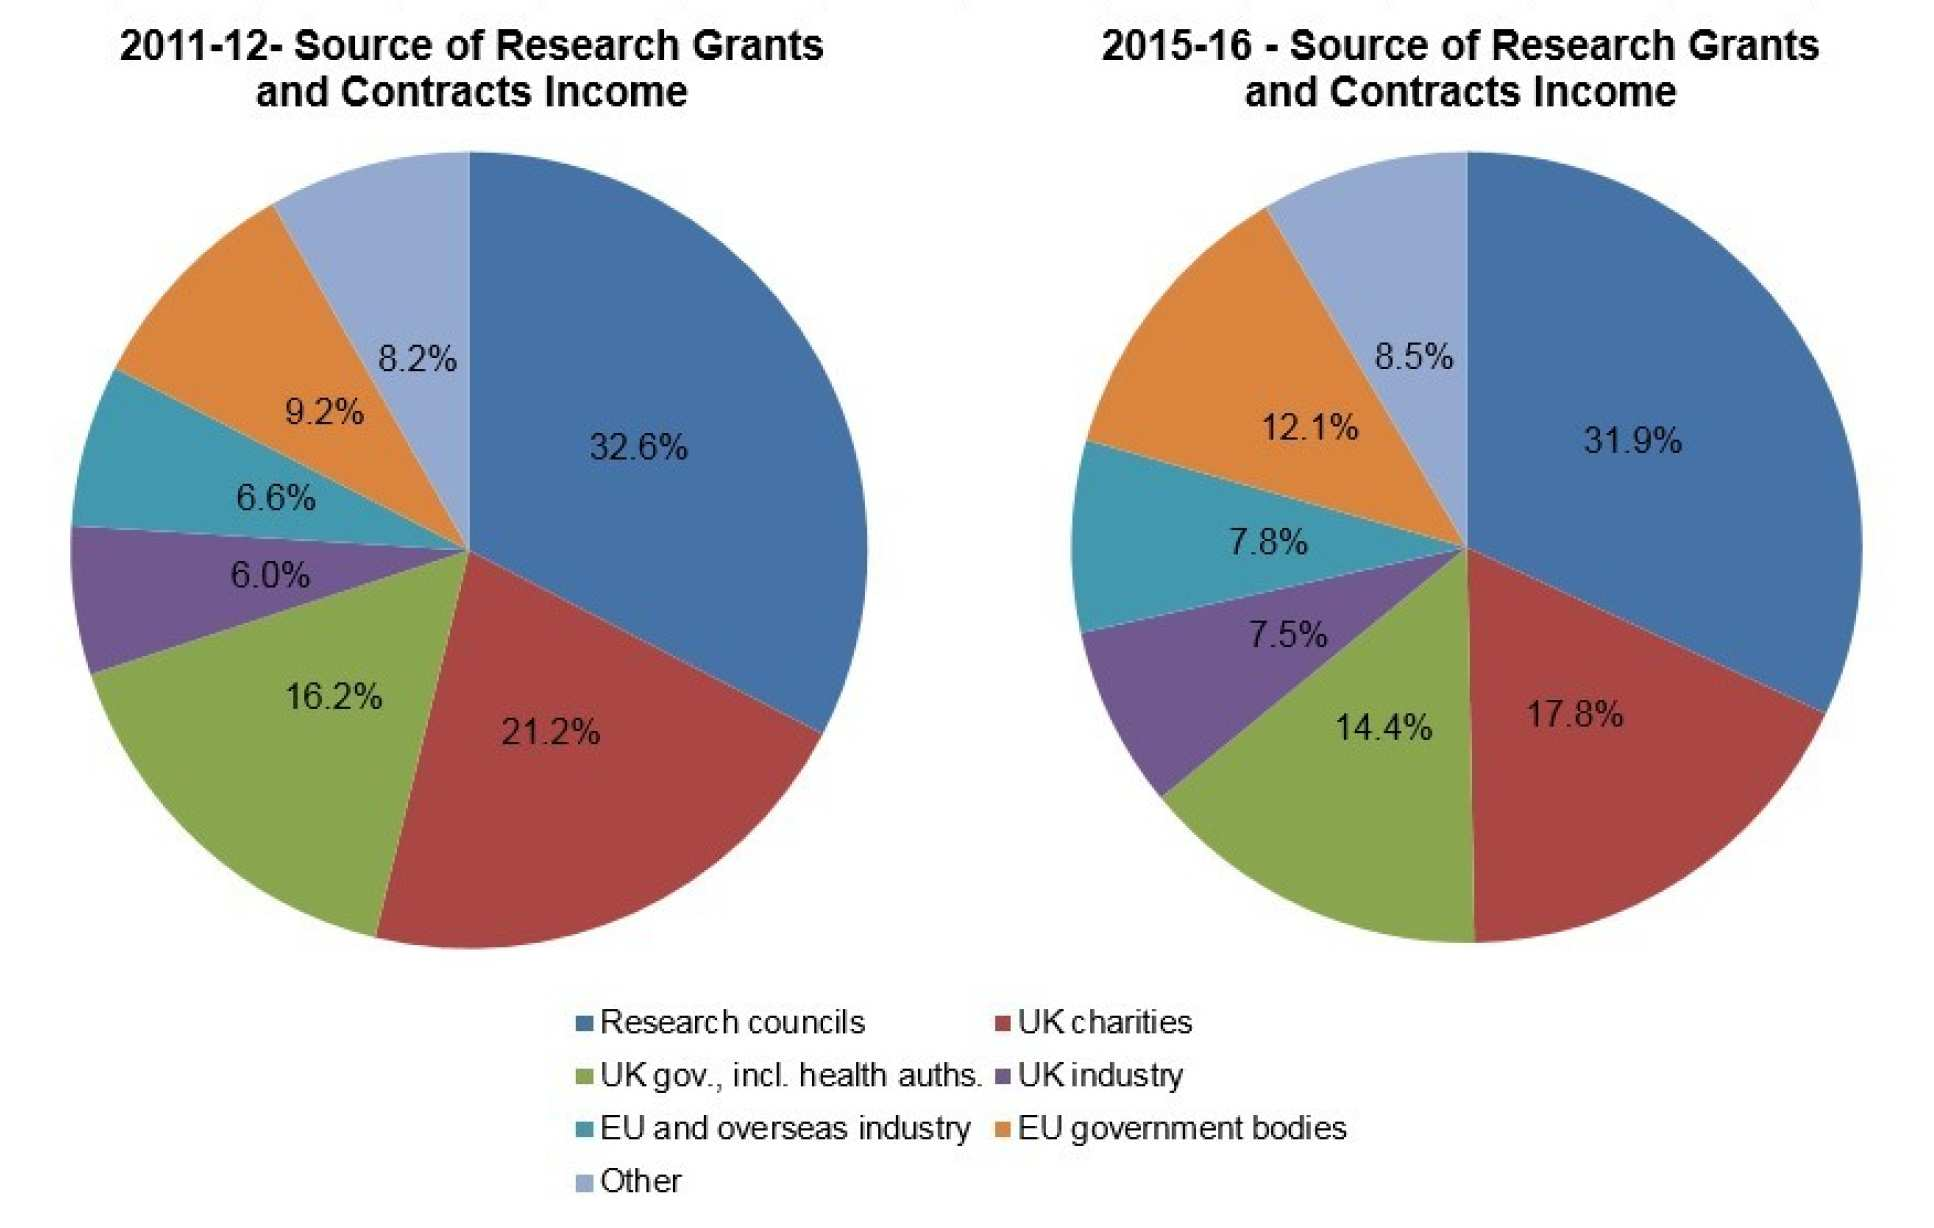 Source of Research Grants and Contracts Income